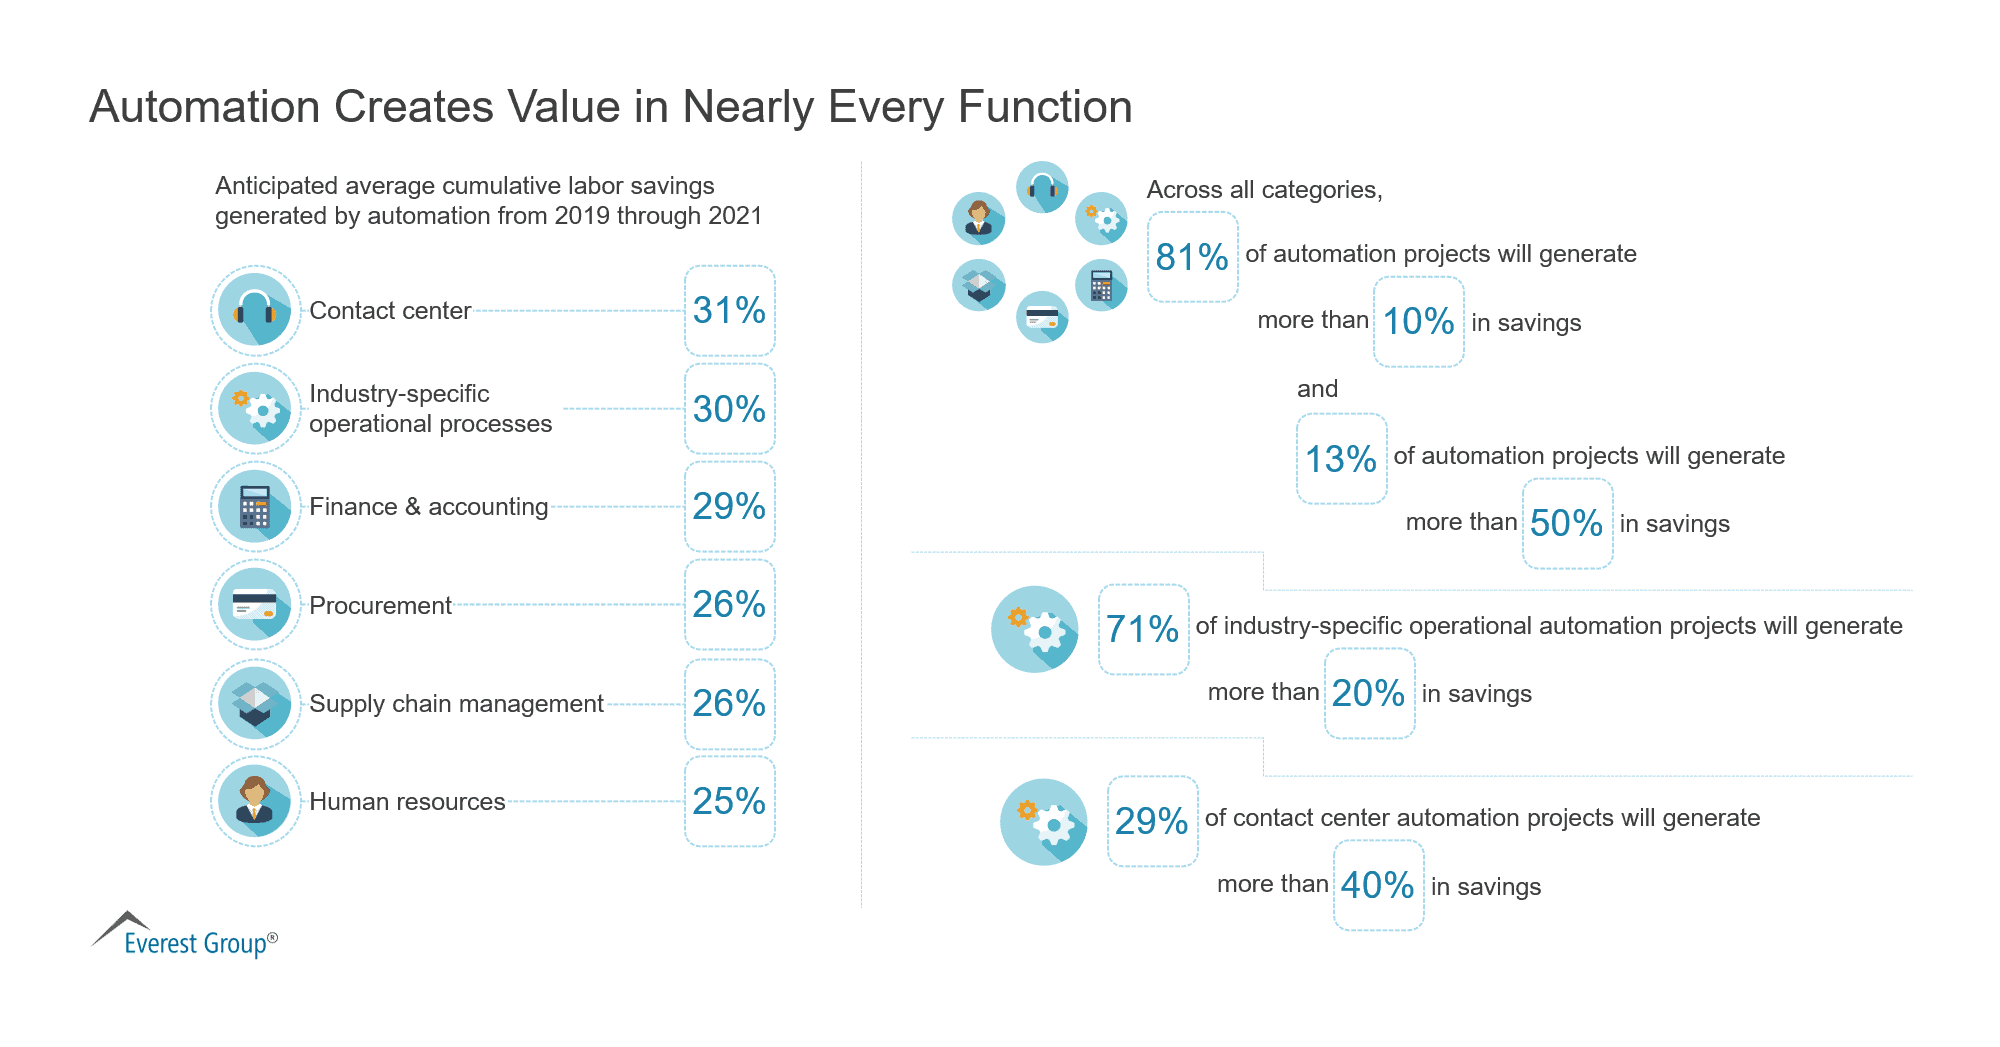 Automation Creates Value in Nearly Every Function